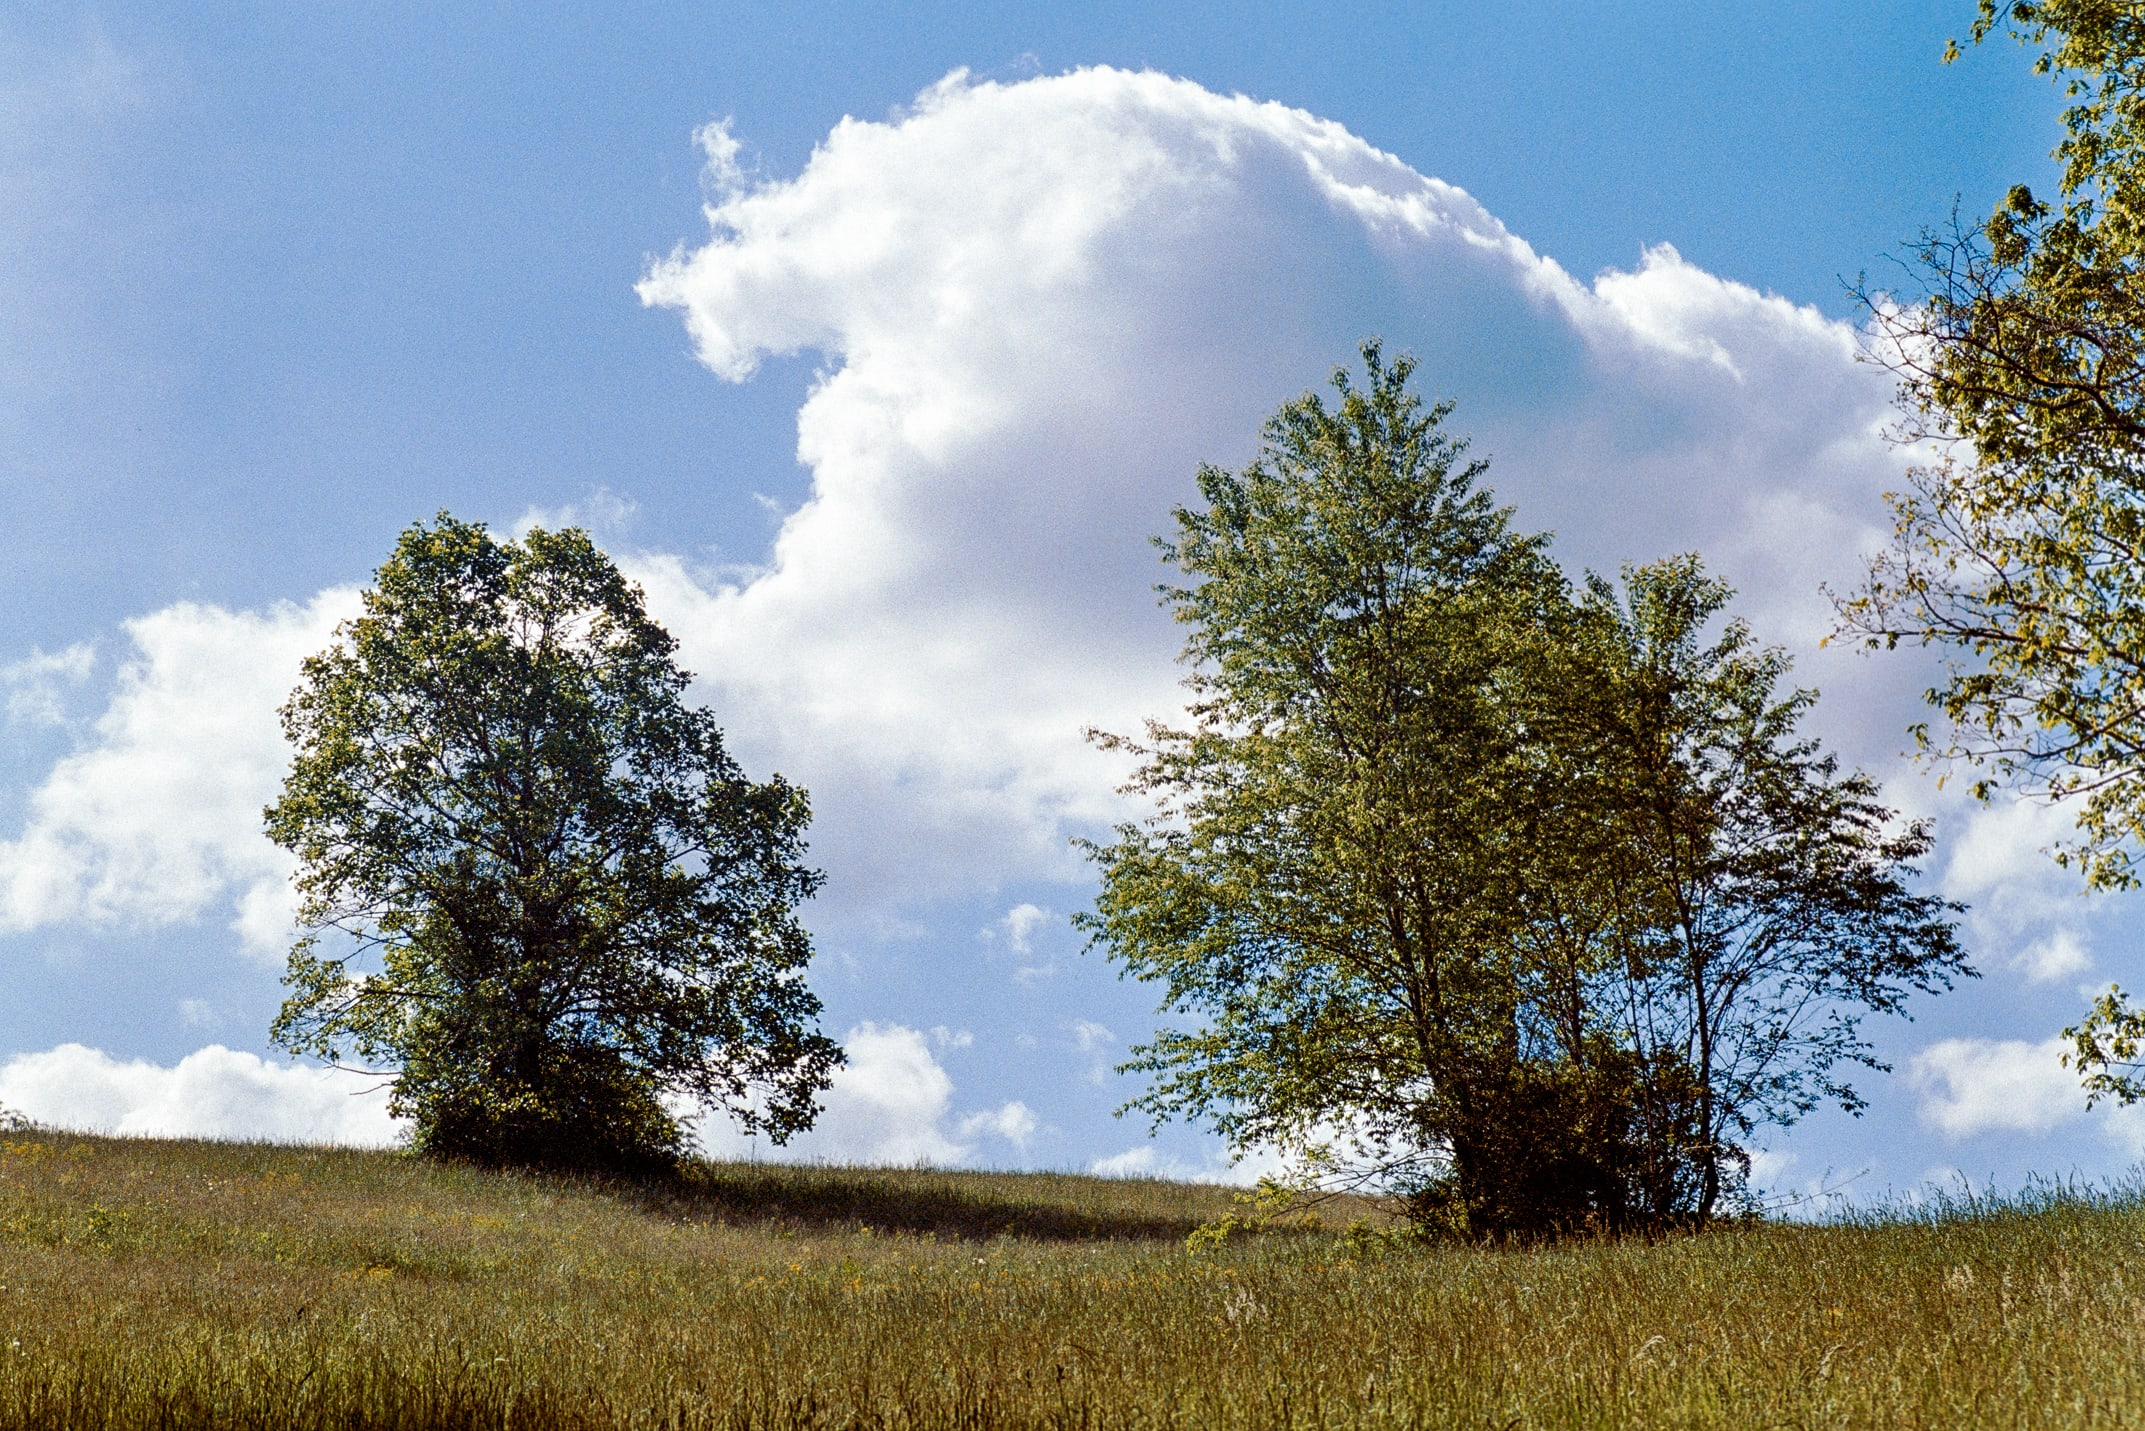 two trees in a meadow with large clouds